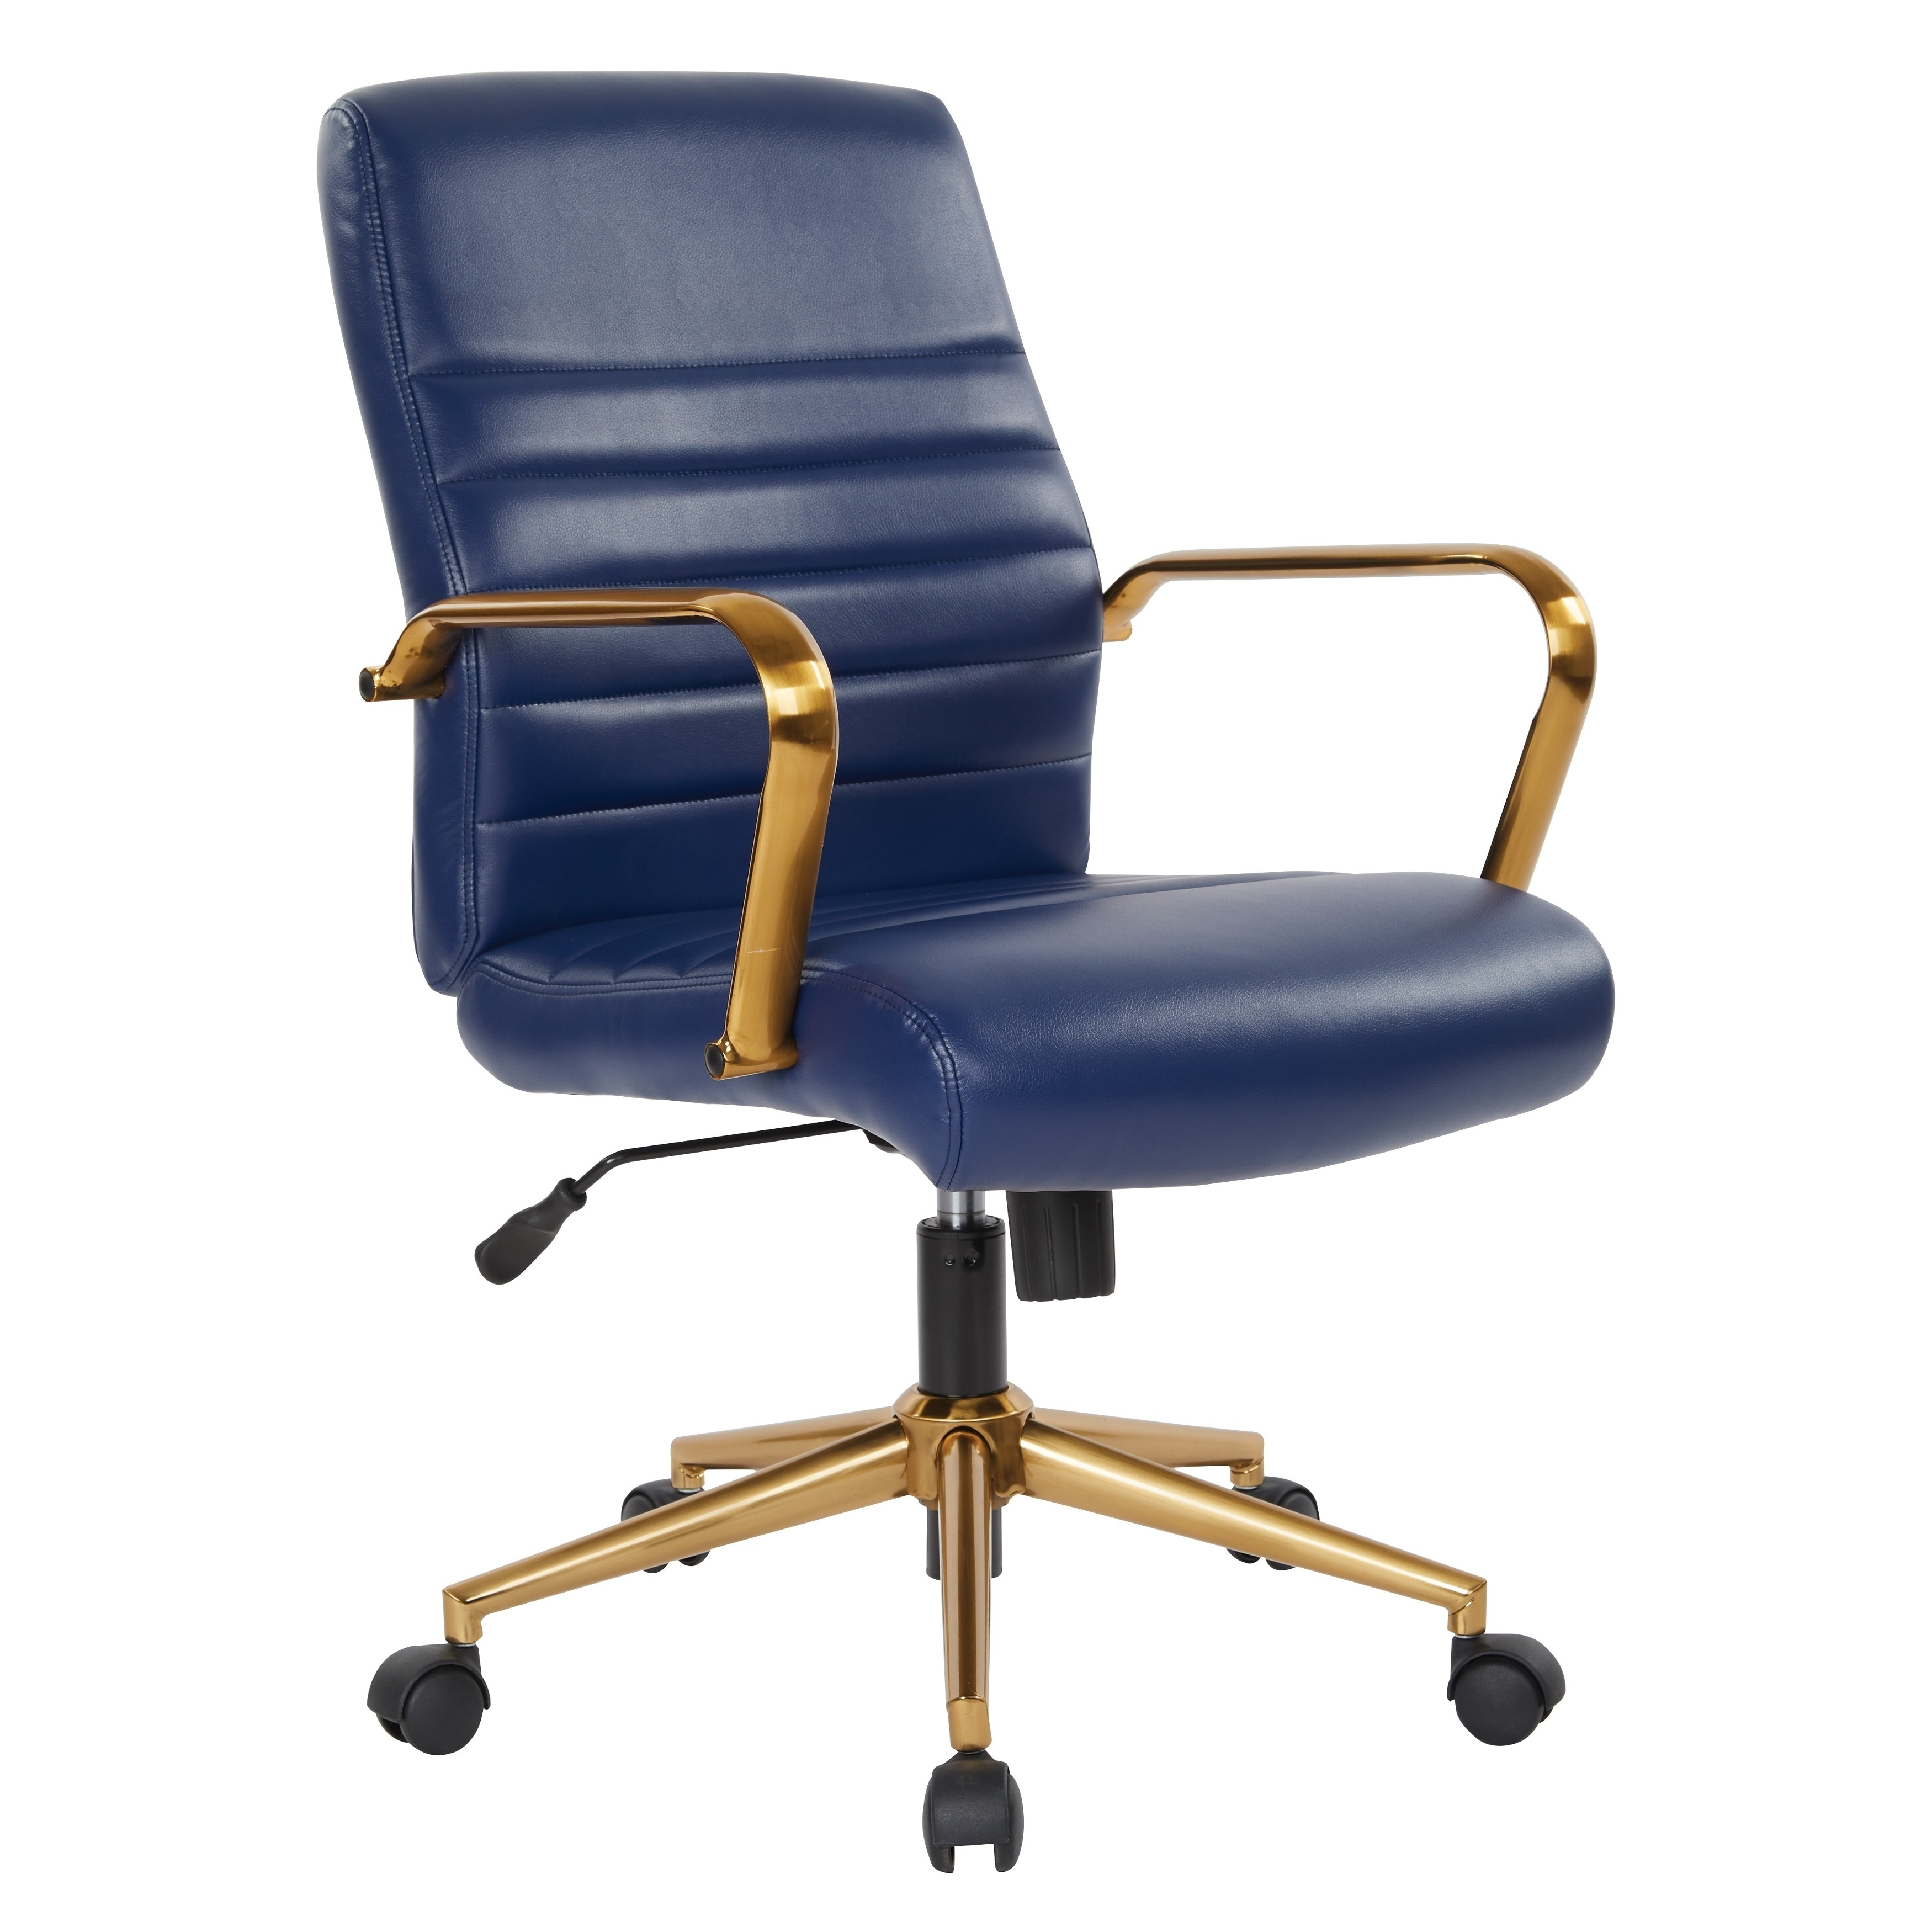 off white office chair. Ave Six Baldwin Mid-Back Faux Leather Chair With Gold Finish Arms And Base Off White Office Chair